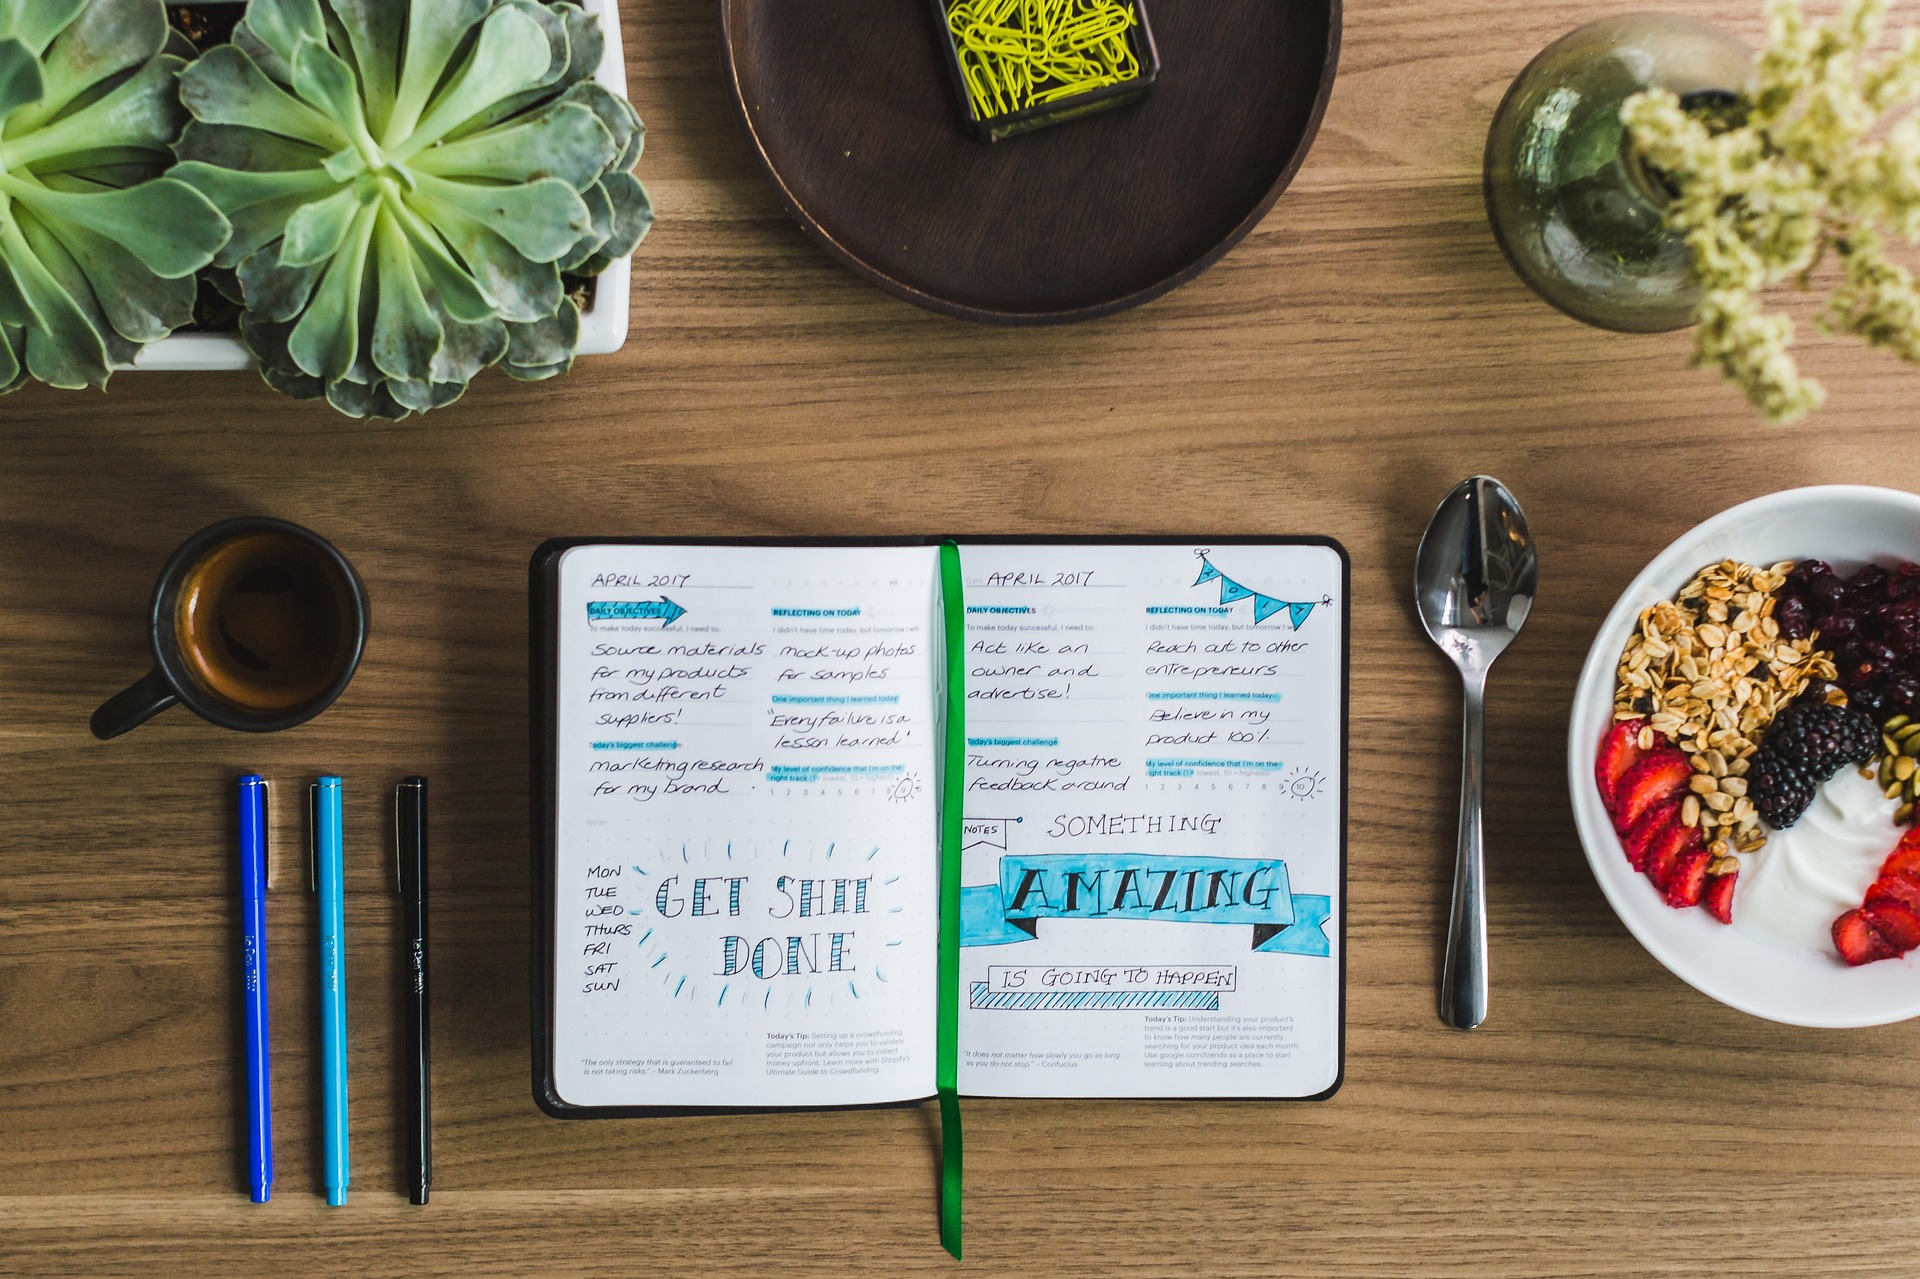 6 ways to positively reboot your brain. the image is of a notebook, fruit/granola bowl, spoon, plants.